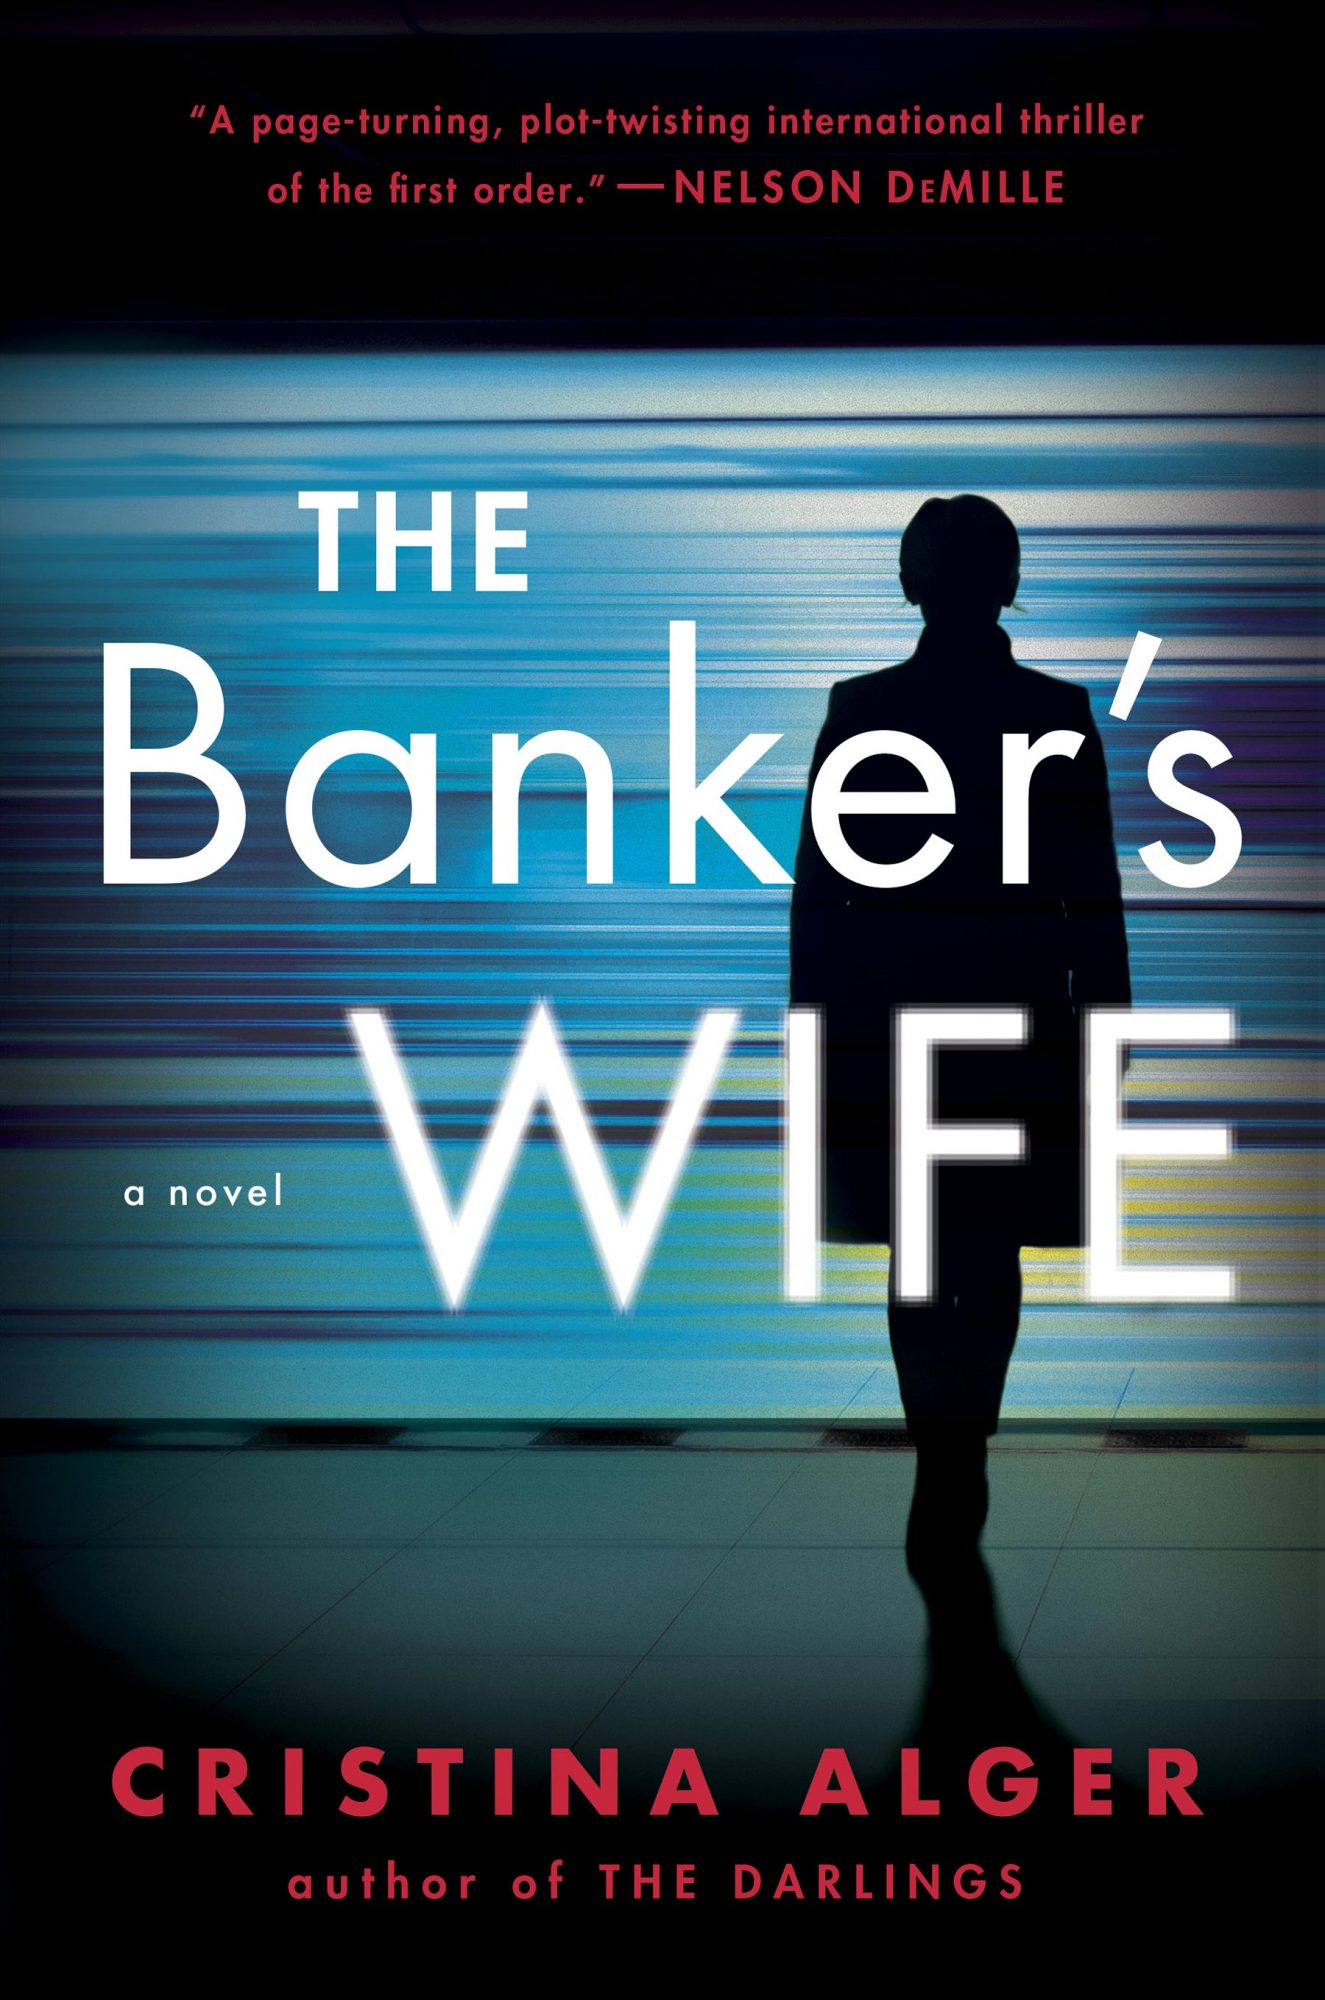 The Banker's Wifeby Cristina AlgerG.P. Putnam's Sons